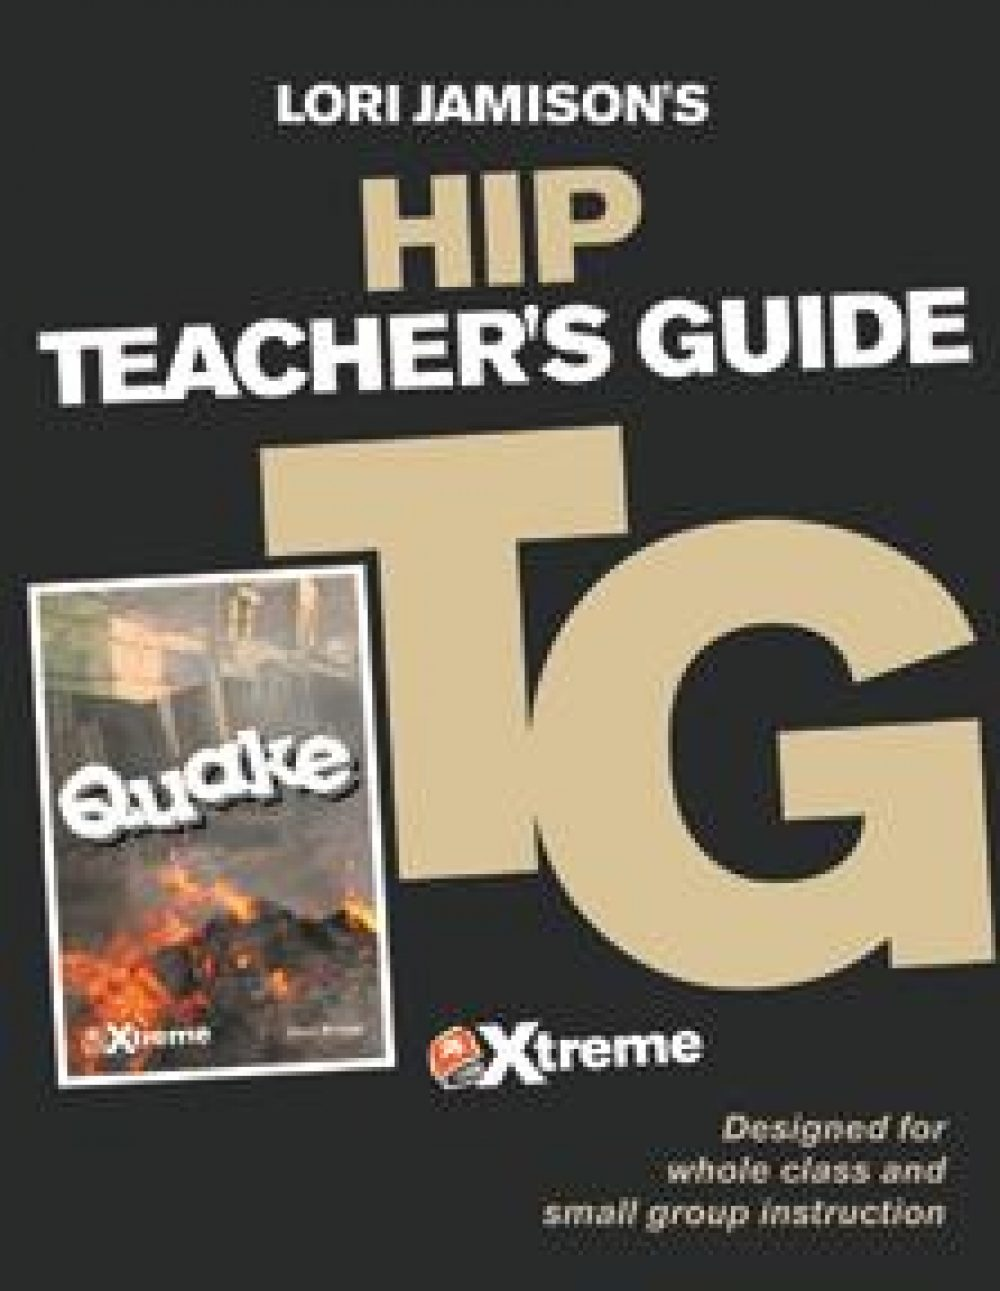 Quake - Teacher's Guide